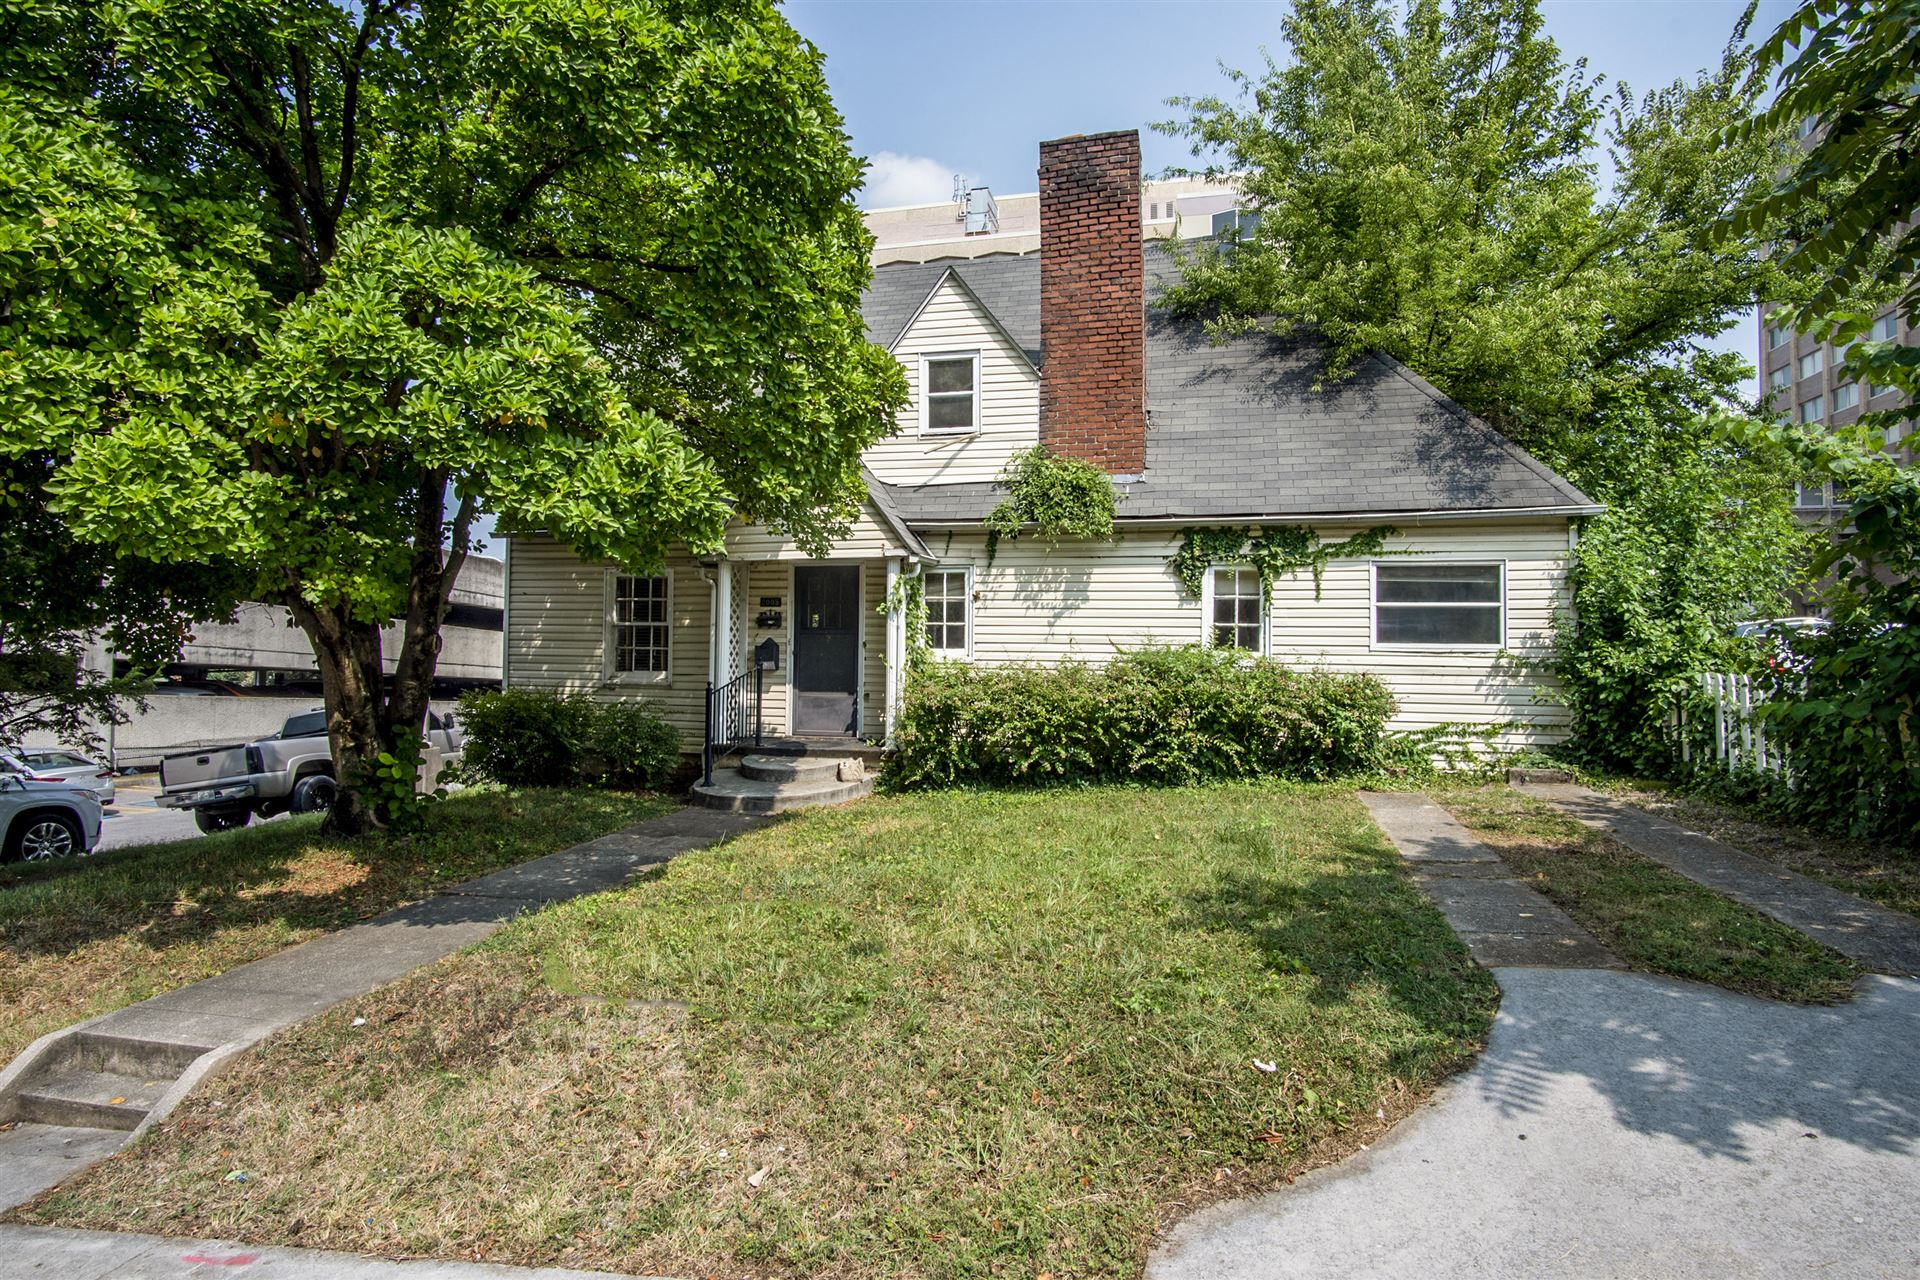 Photo of 2005 Clinch Ave, Knoxville, TN 37916 (MLS # 1162485)